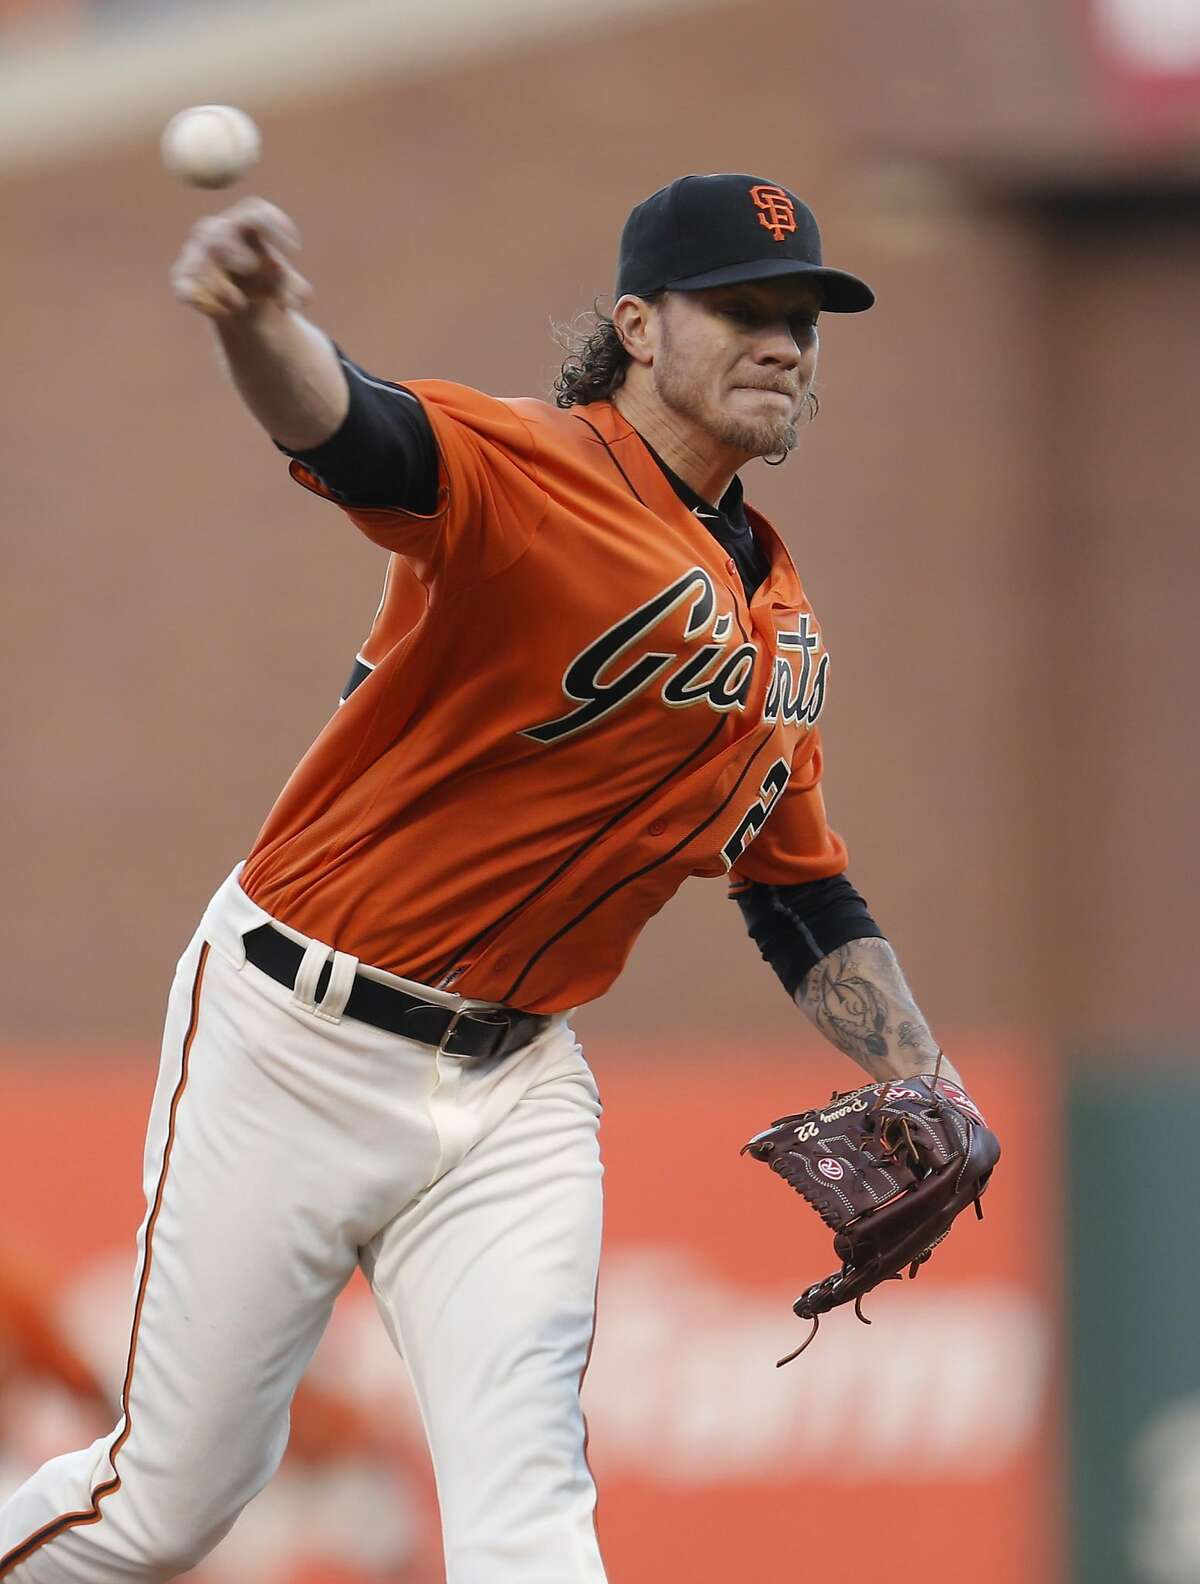 Giants' starting pitcher Jake Peavy throws in the first inning as the San Francisco Giants take on the Chicago Cubs at AT&T Park in San Francisco, California on Fri. May 20, 2016.